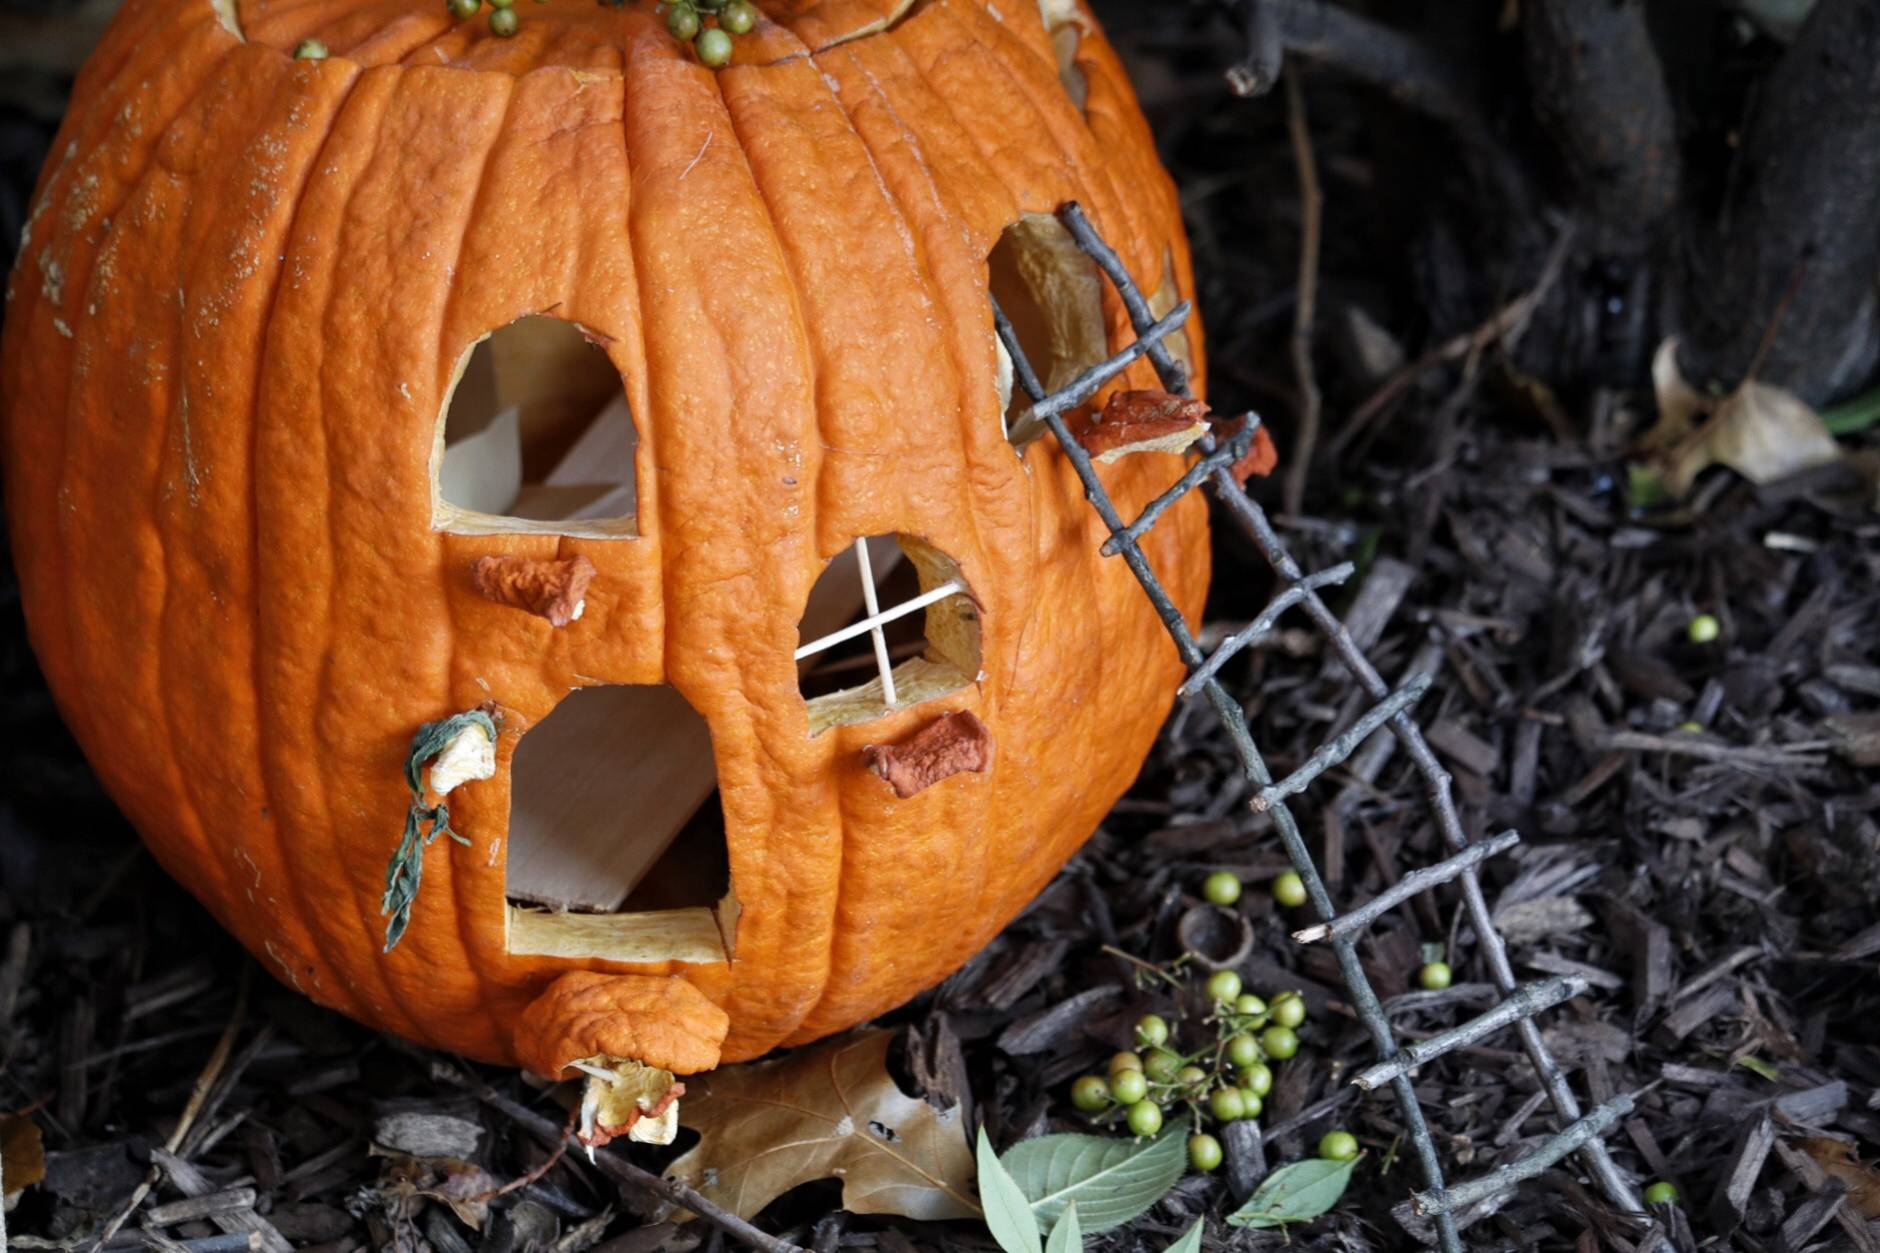 Six-year-old Eloie was inspired by a book on fairy gardens and started making a little house for them out of pumpkins. (WTOP/Kate Ryan)